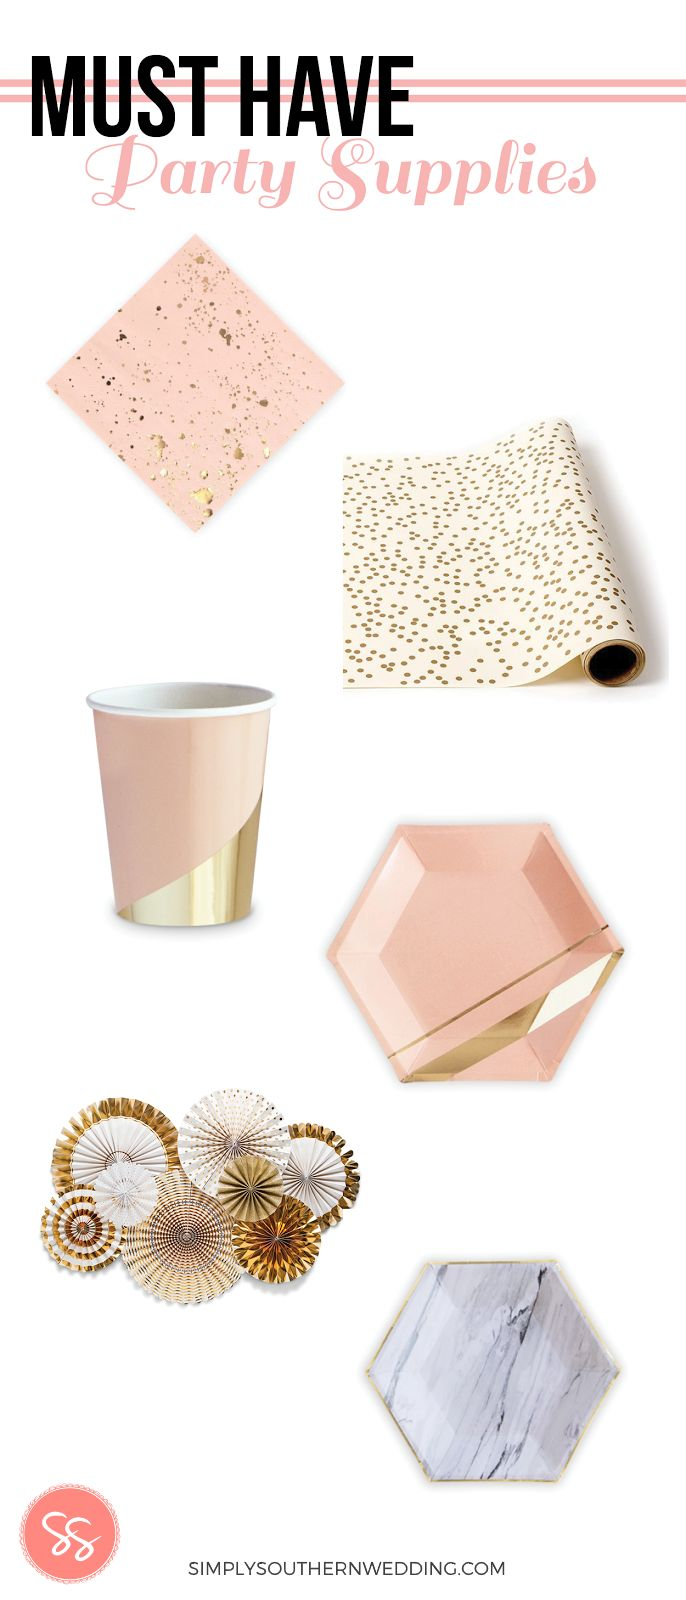 Must have party supplies for everything from a 1st birthday party to a bridal shower. These gorgeous gold accented party supplies will satisfy all your party planning needs and make clean-up a breeze! || Check out all of our party supplies online at simplysouthernwedding.com